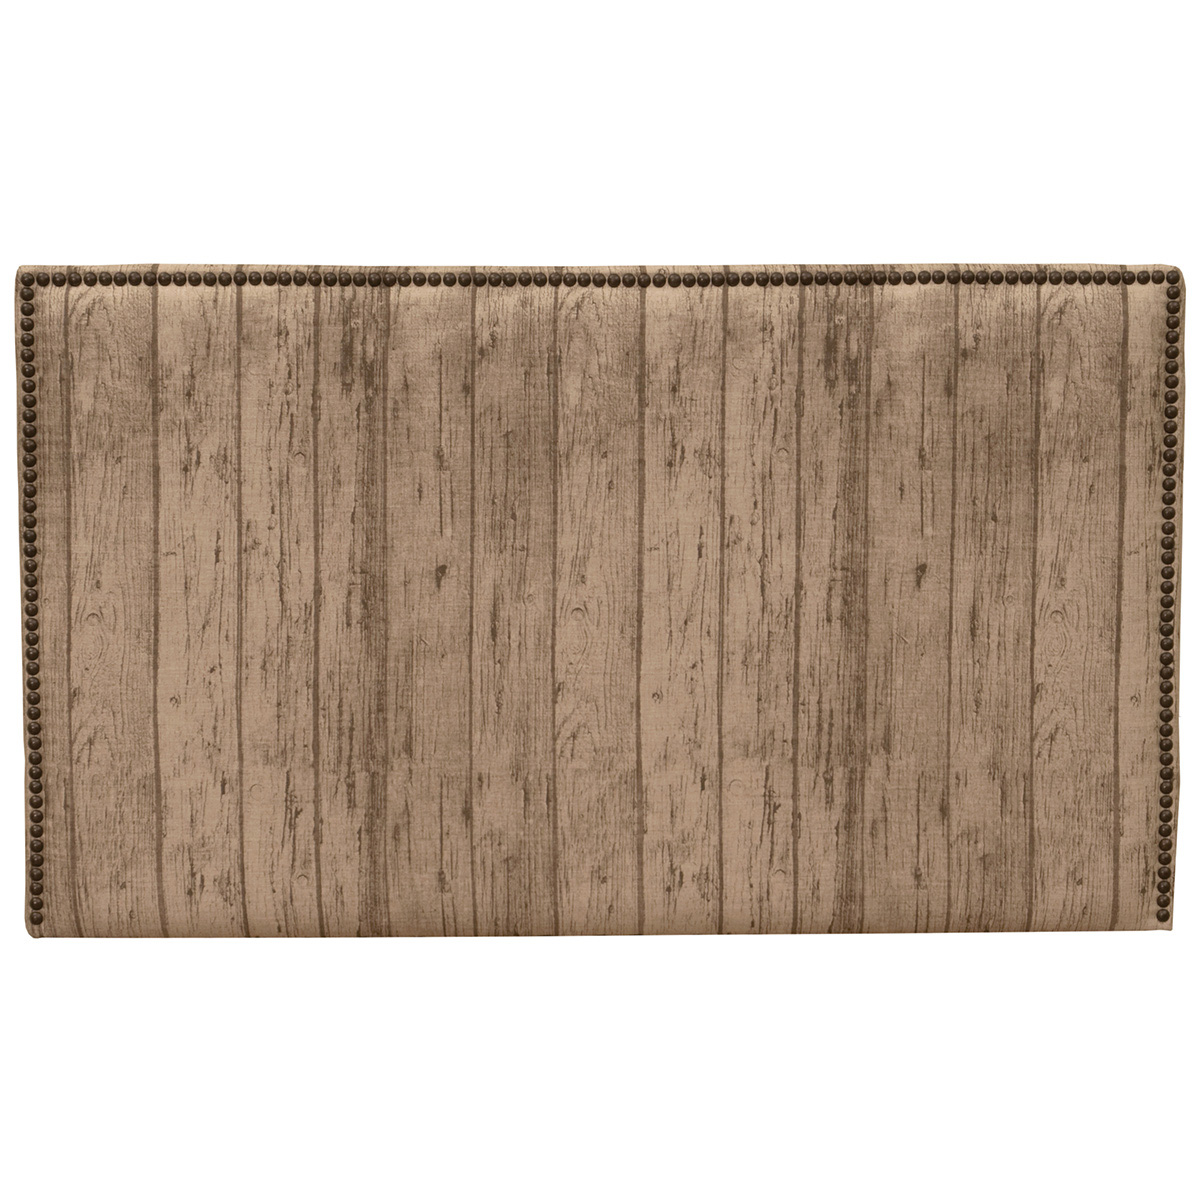 Highland Wood Plank Fabric Headboard - Cal King